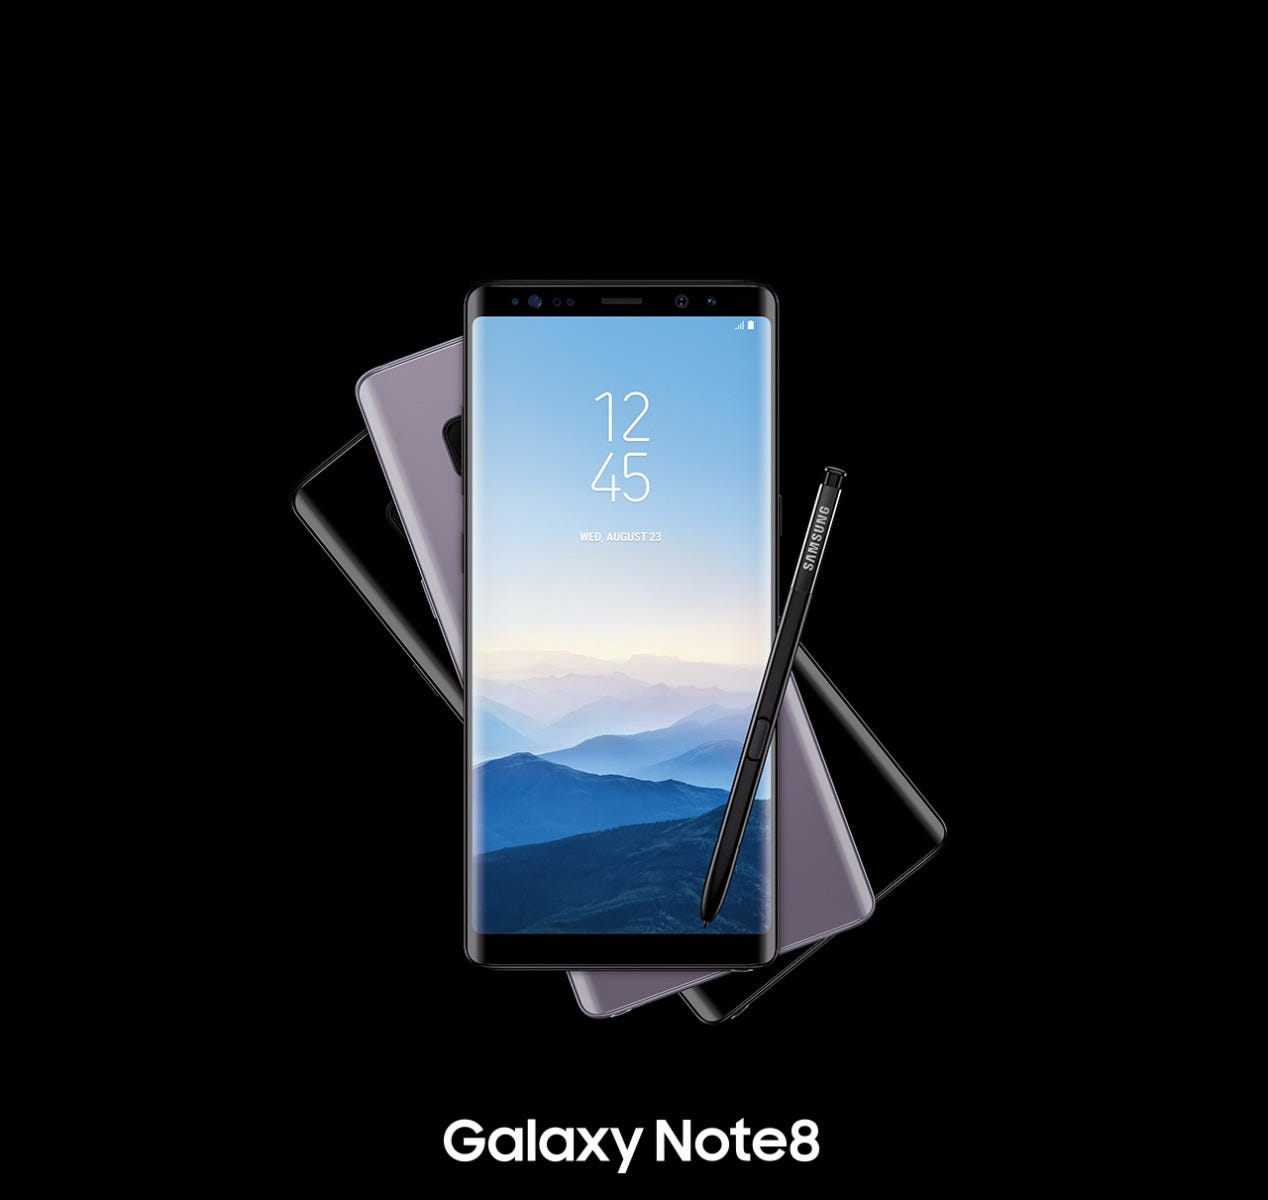 Galaxy Note8 phone and pen